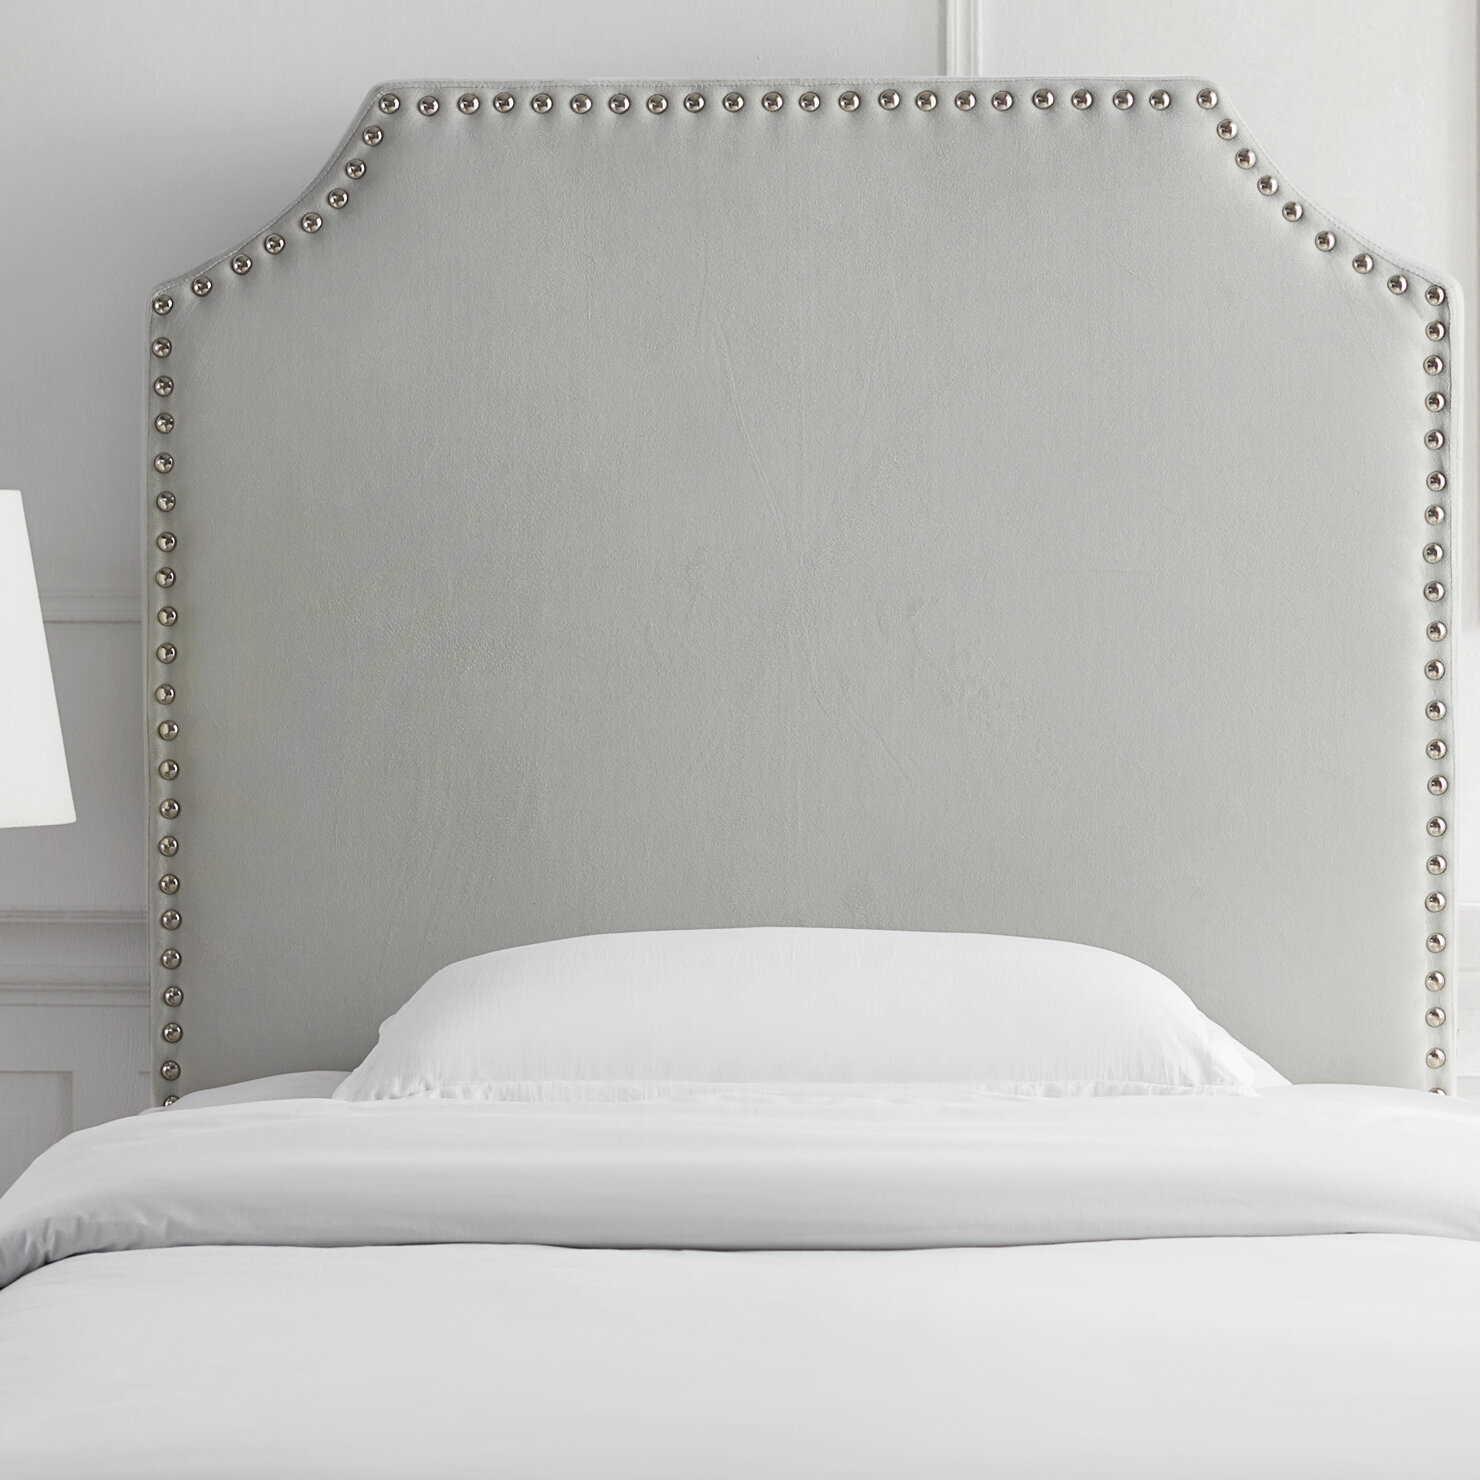 Maidste Bevel Tacked Plush College Twin Upholstered Headboard